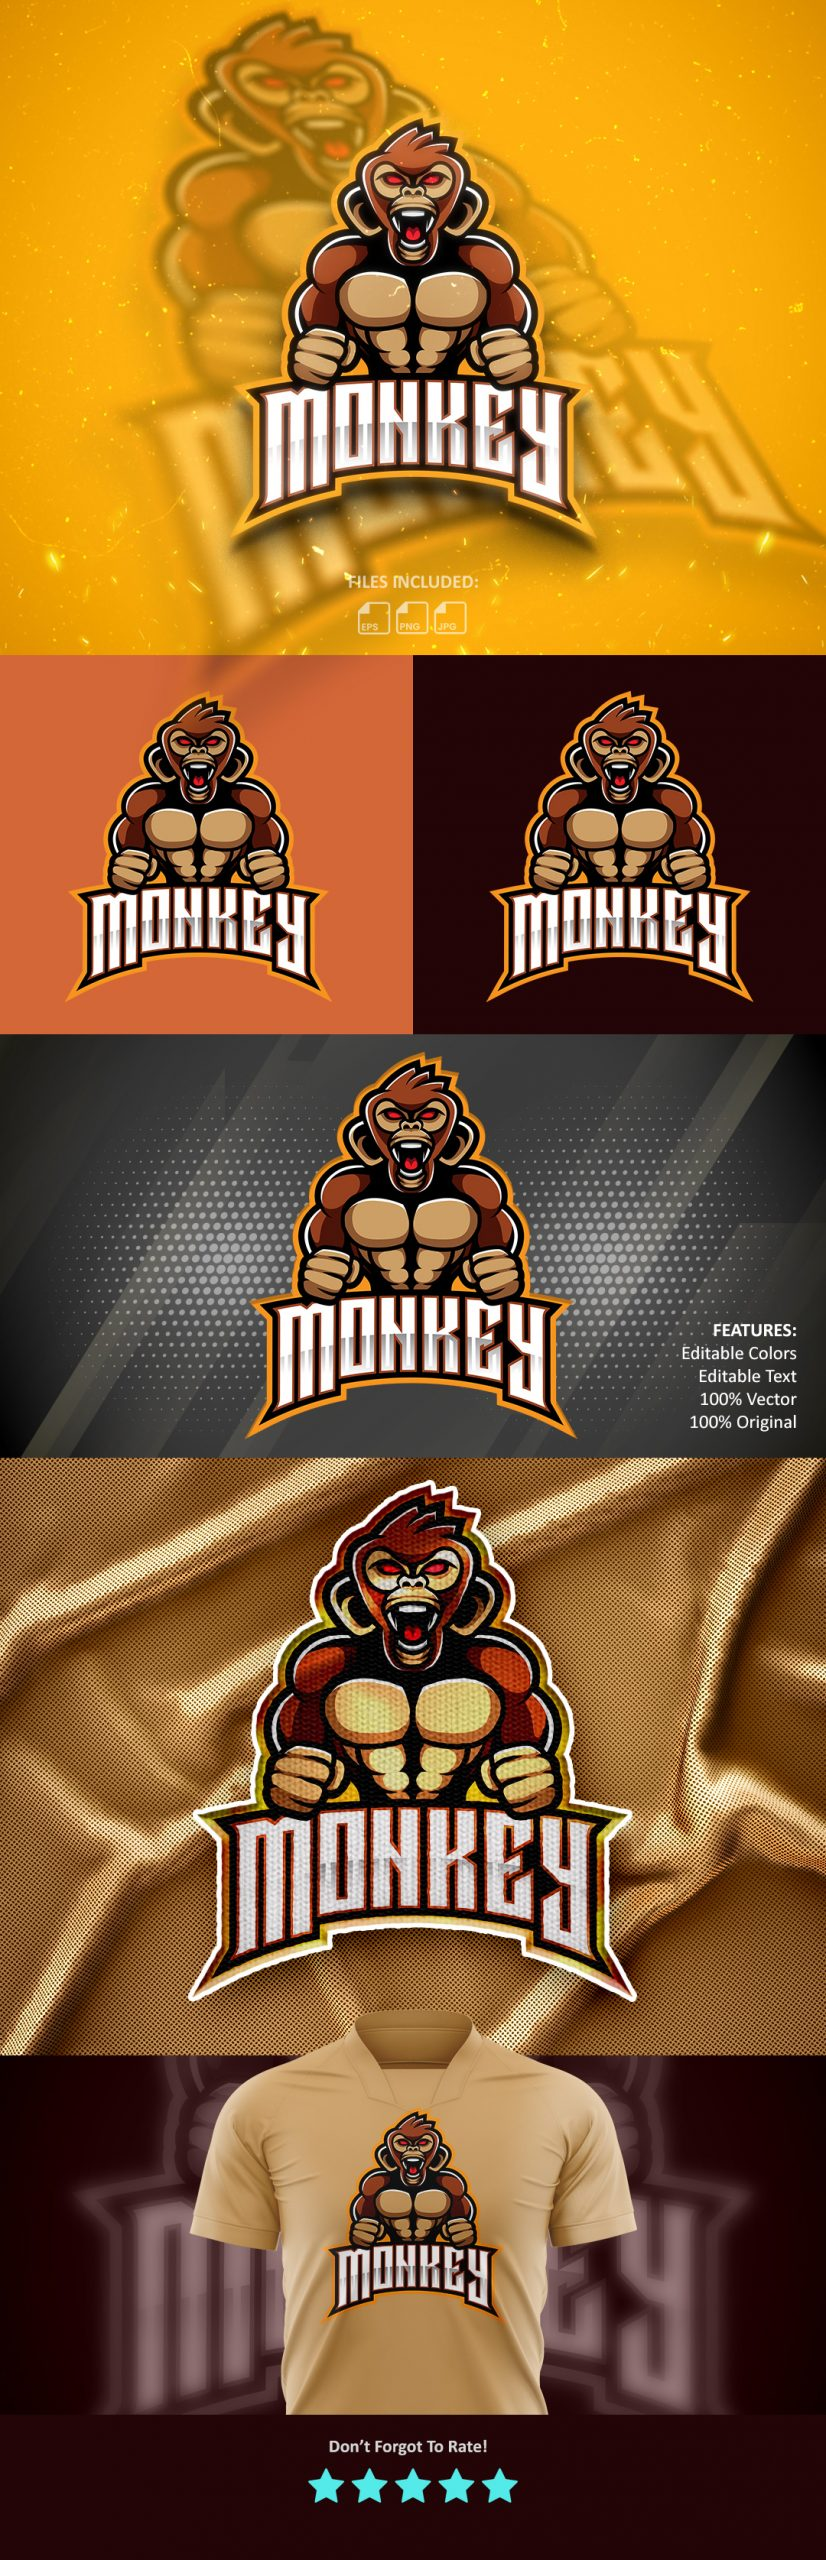 Free-Download-Monkey-Esports-Logo-Design